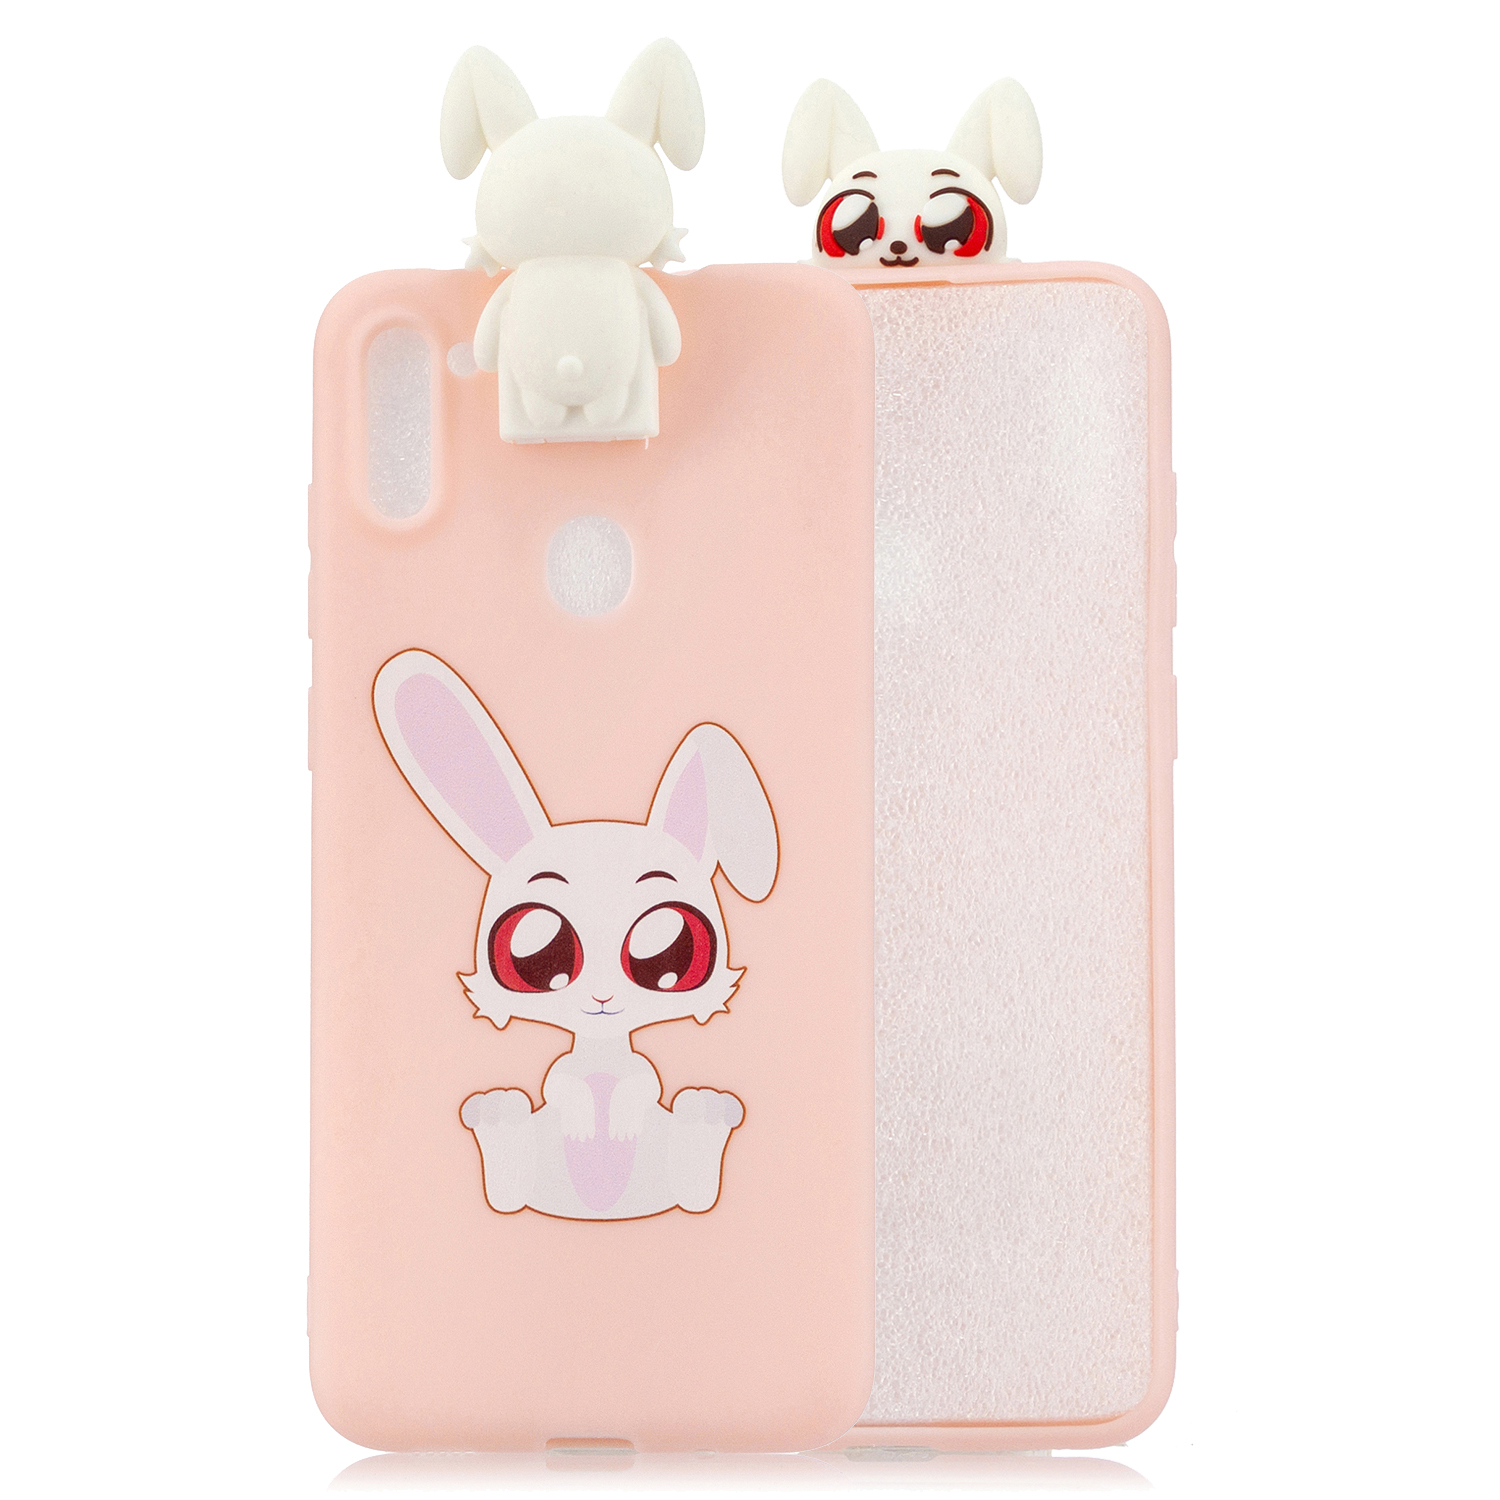 For Samsung A11 Soft TPU Back Cover Cartoon Painting Mobile Phone Case Shell with Bracket big eared rabbits